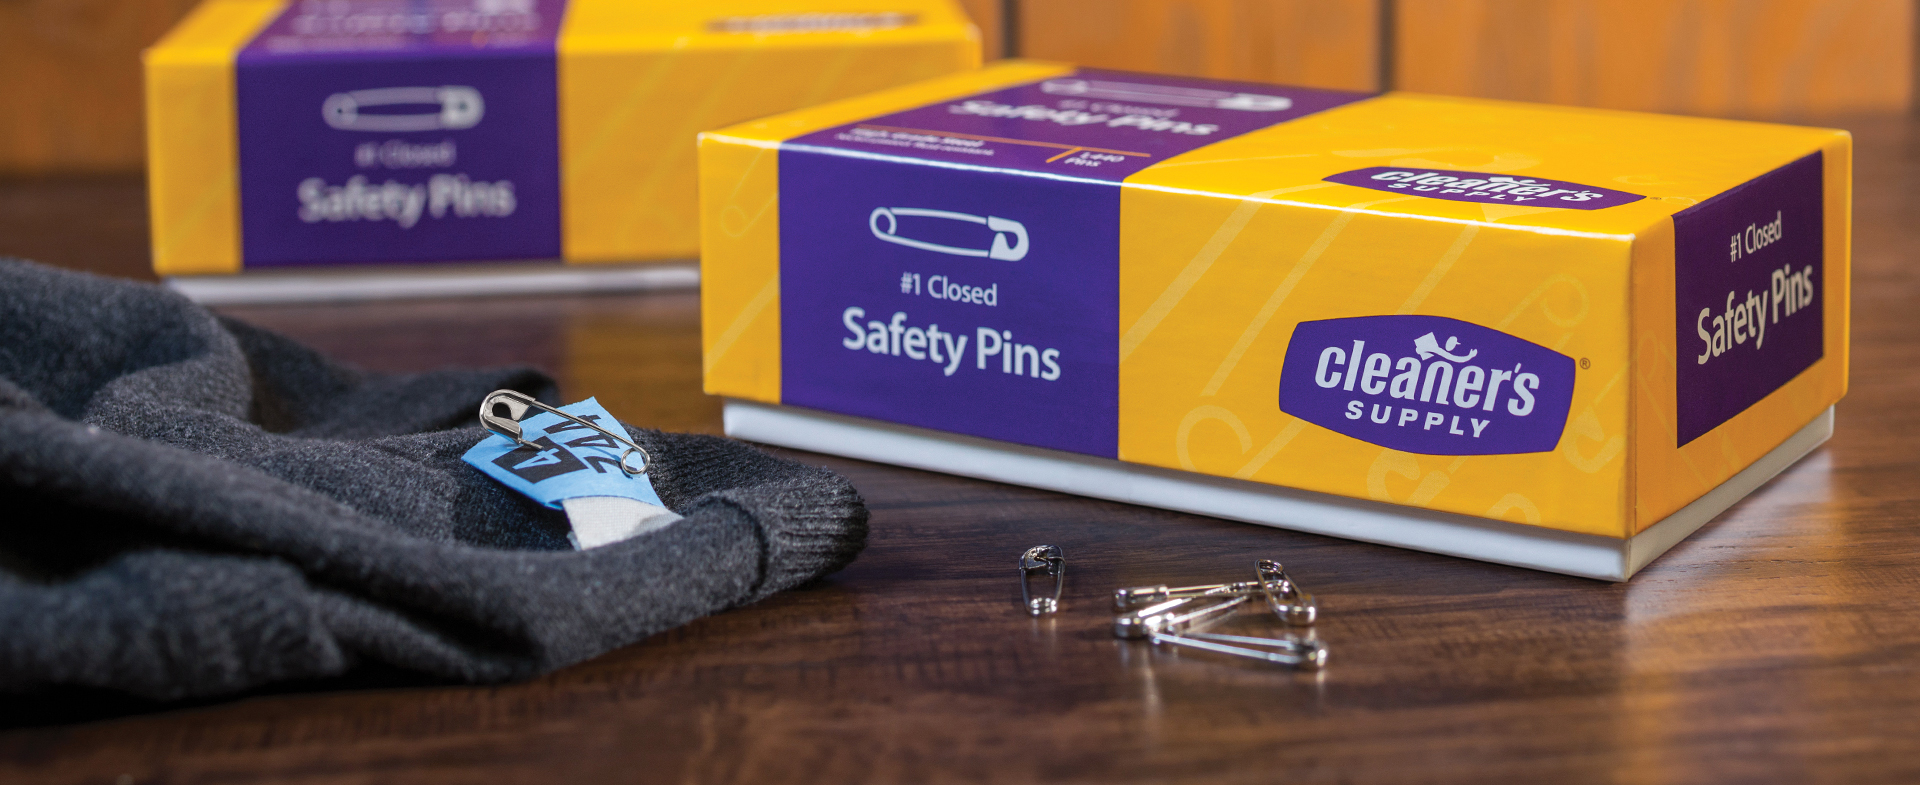 Cleaner's Supply #1 Closed Safety Pins